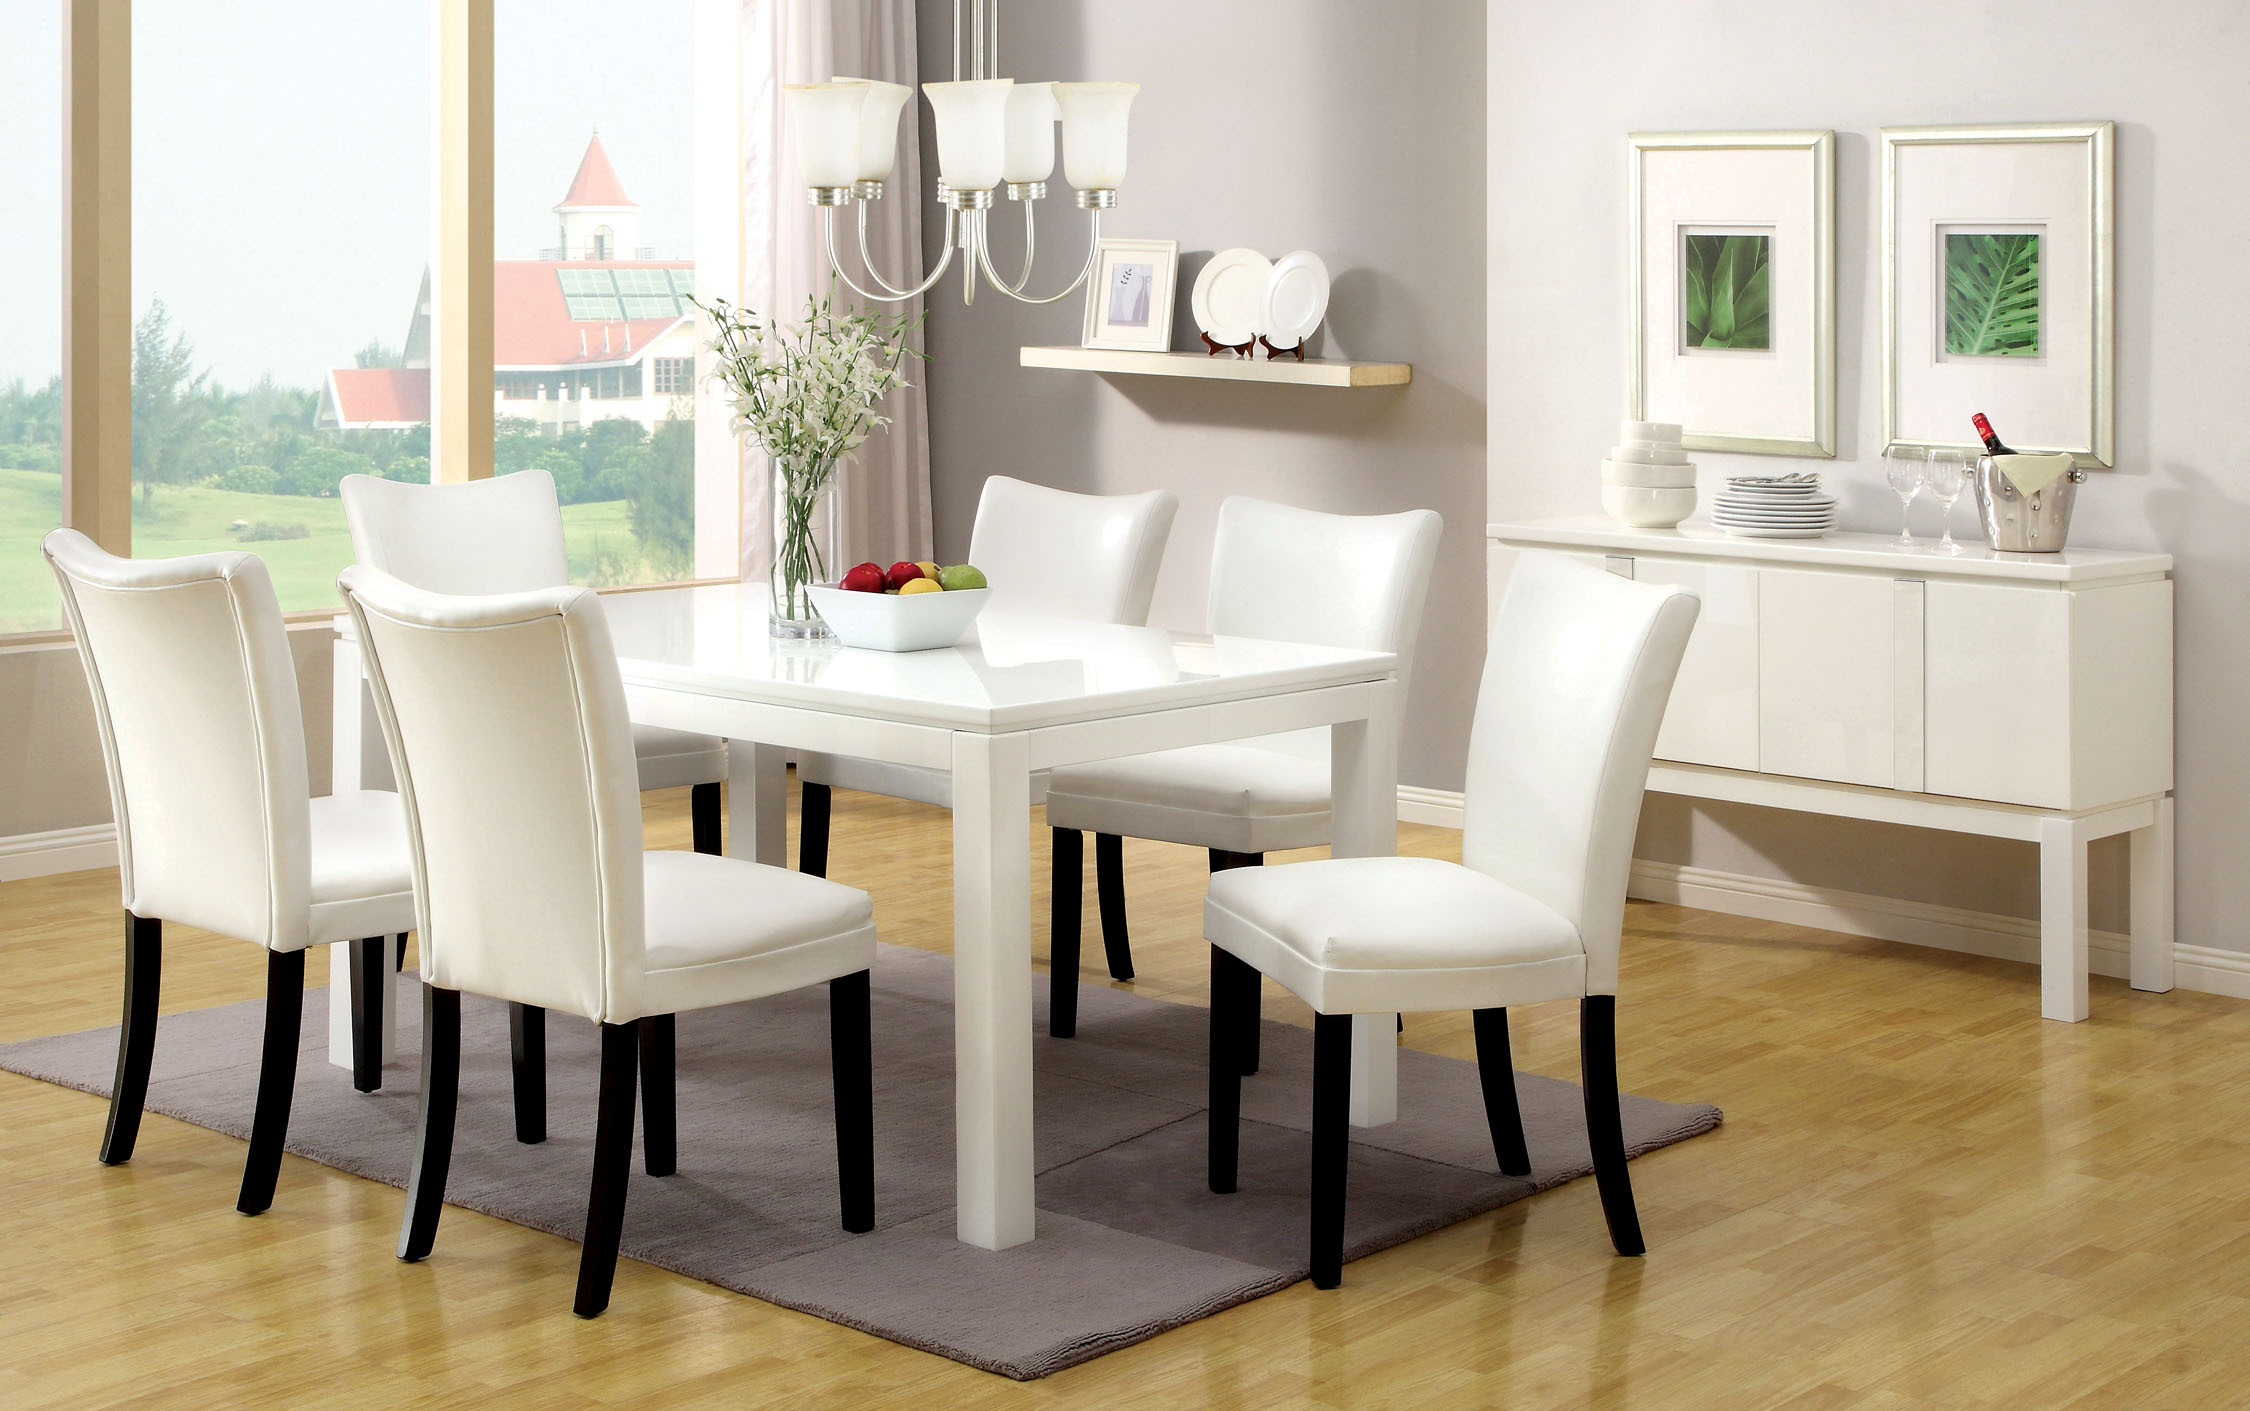 p P white kitchen table Furniture of America Grangas White Gloss Dining Table Home Furniture Dining Kitchen Furniture Dining Tables